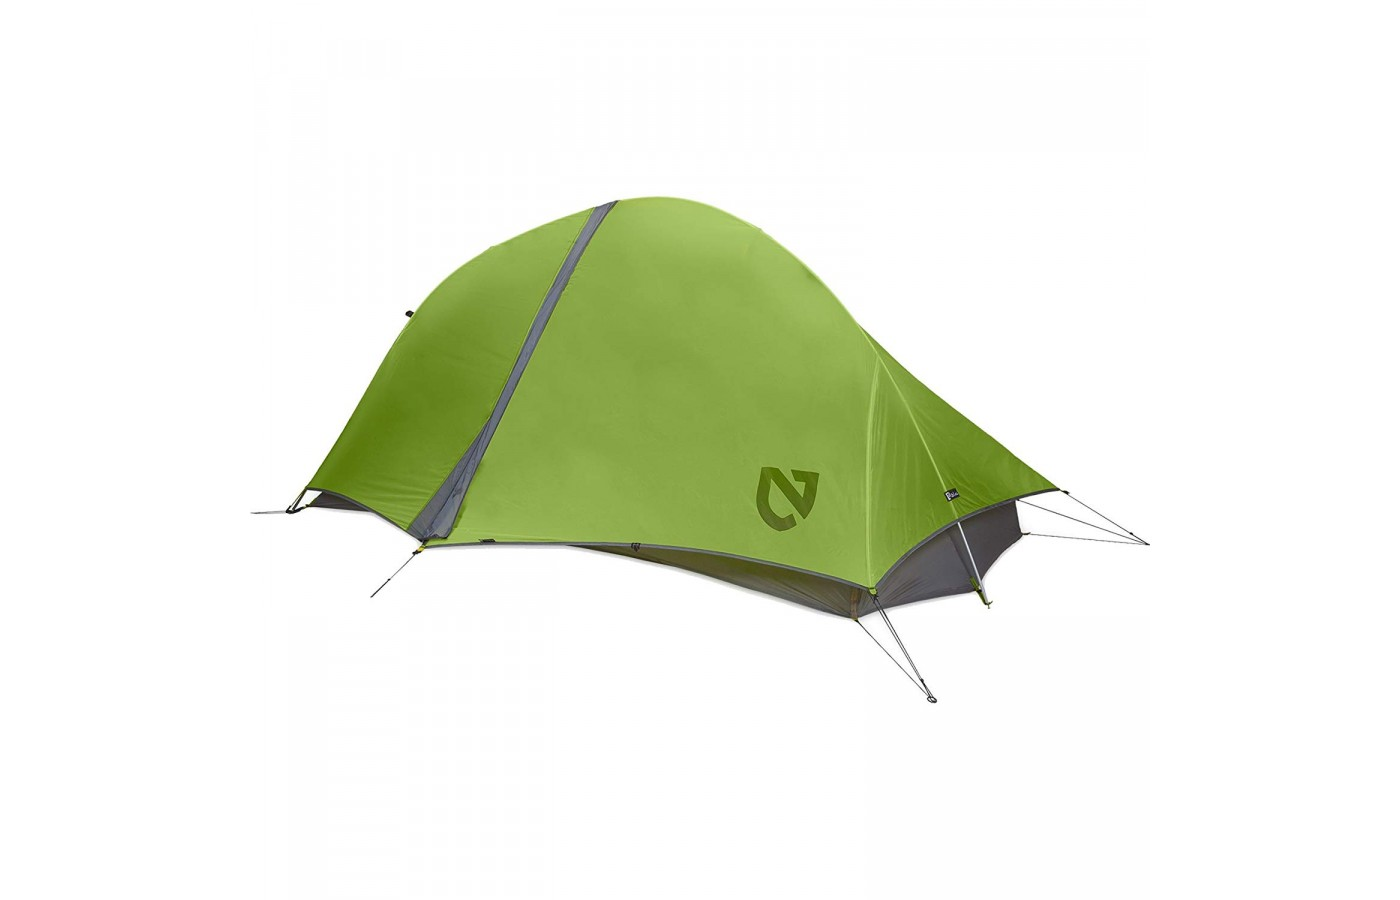 The Nemo Hornet 2P offers a rain cover for protection from moisture.